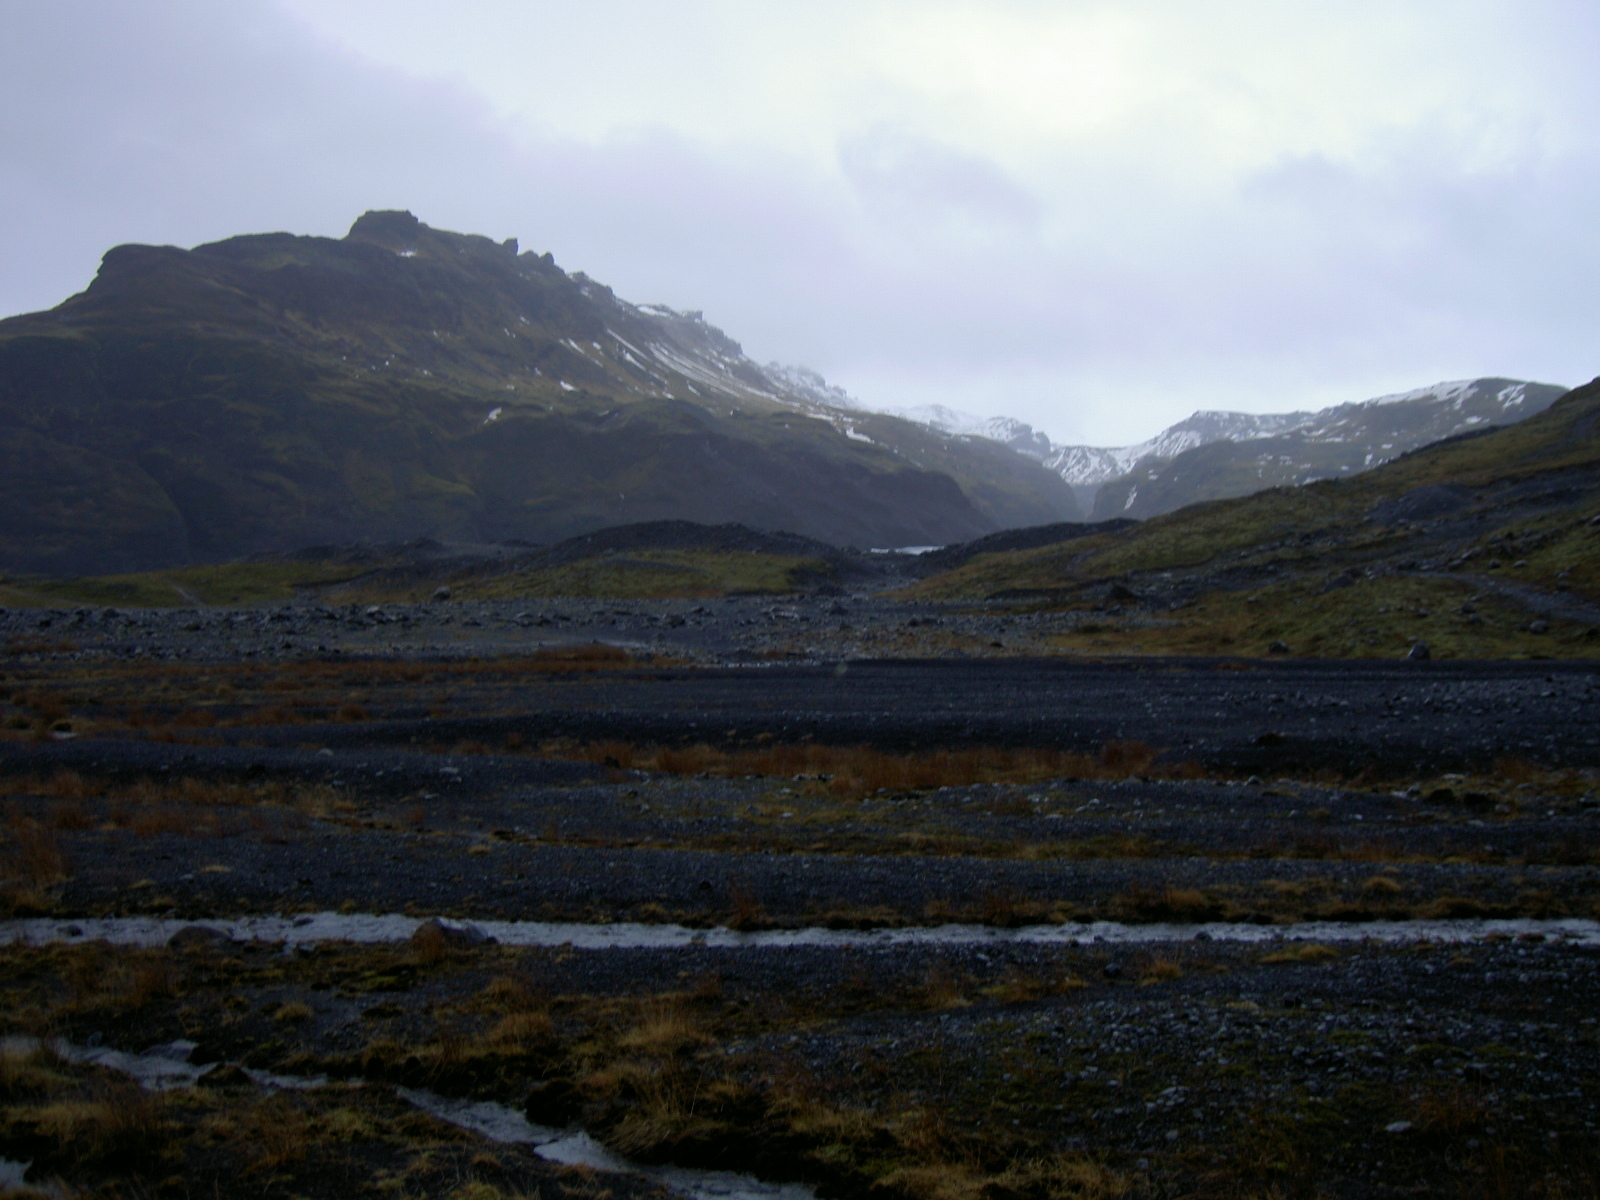 Path to Myrdals glacier (purpose of page is to display an image)